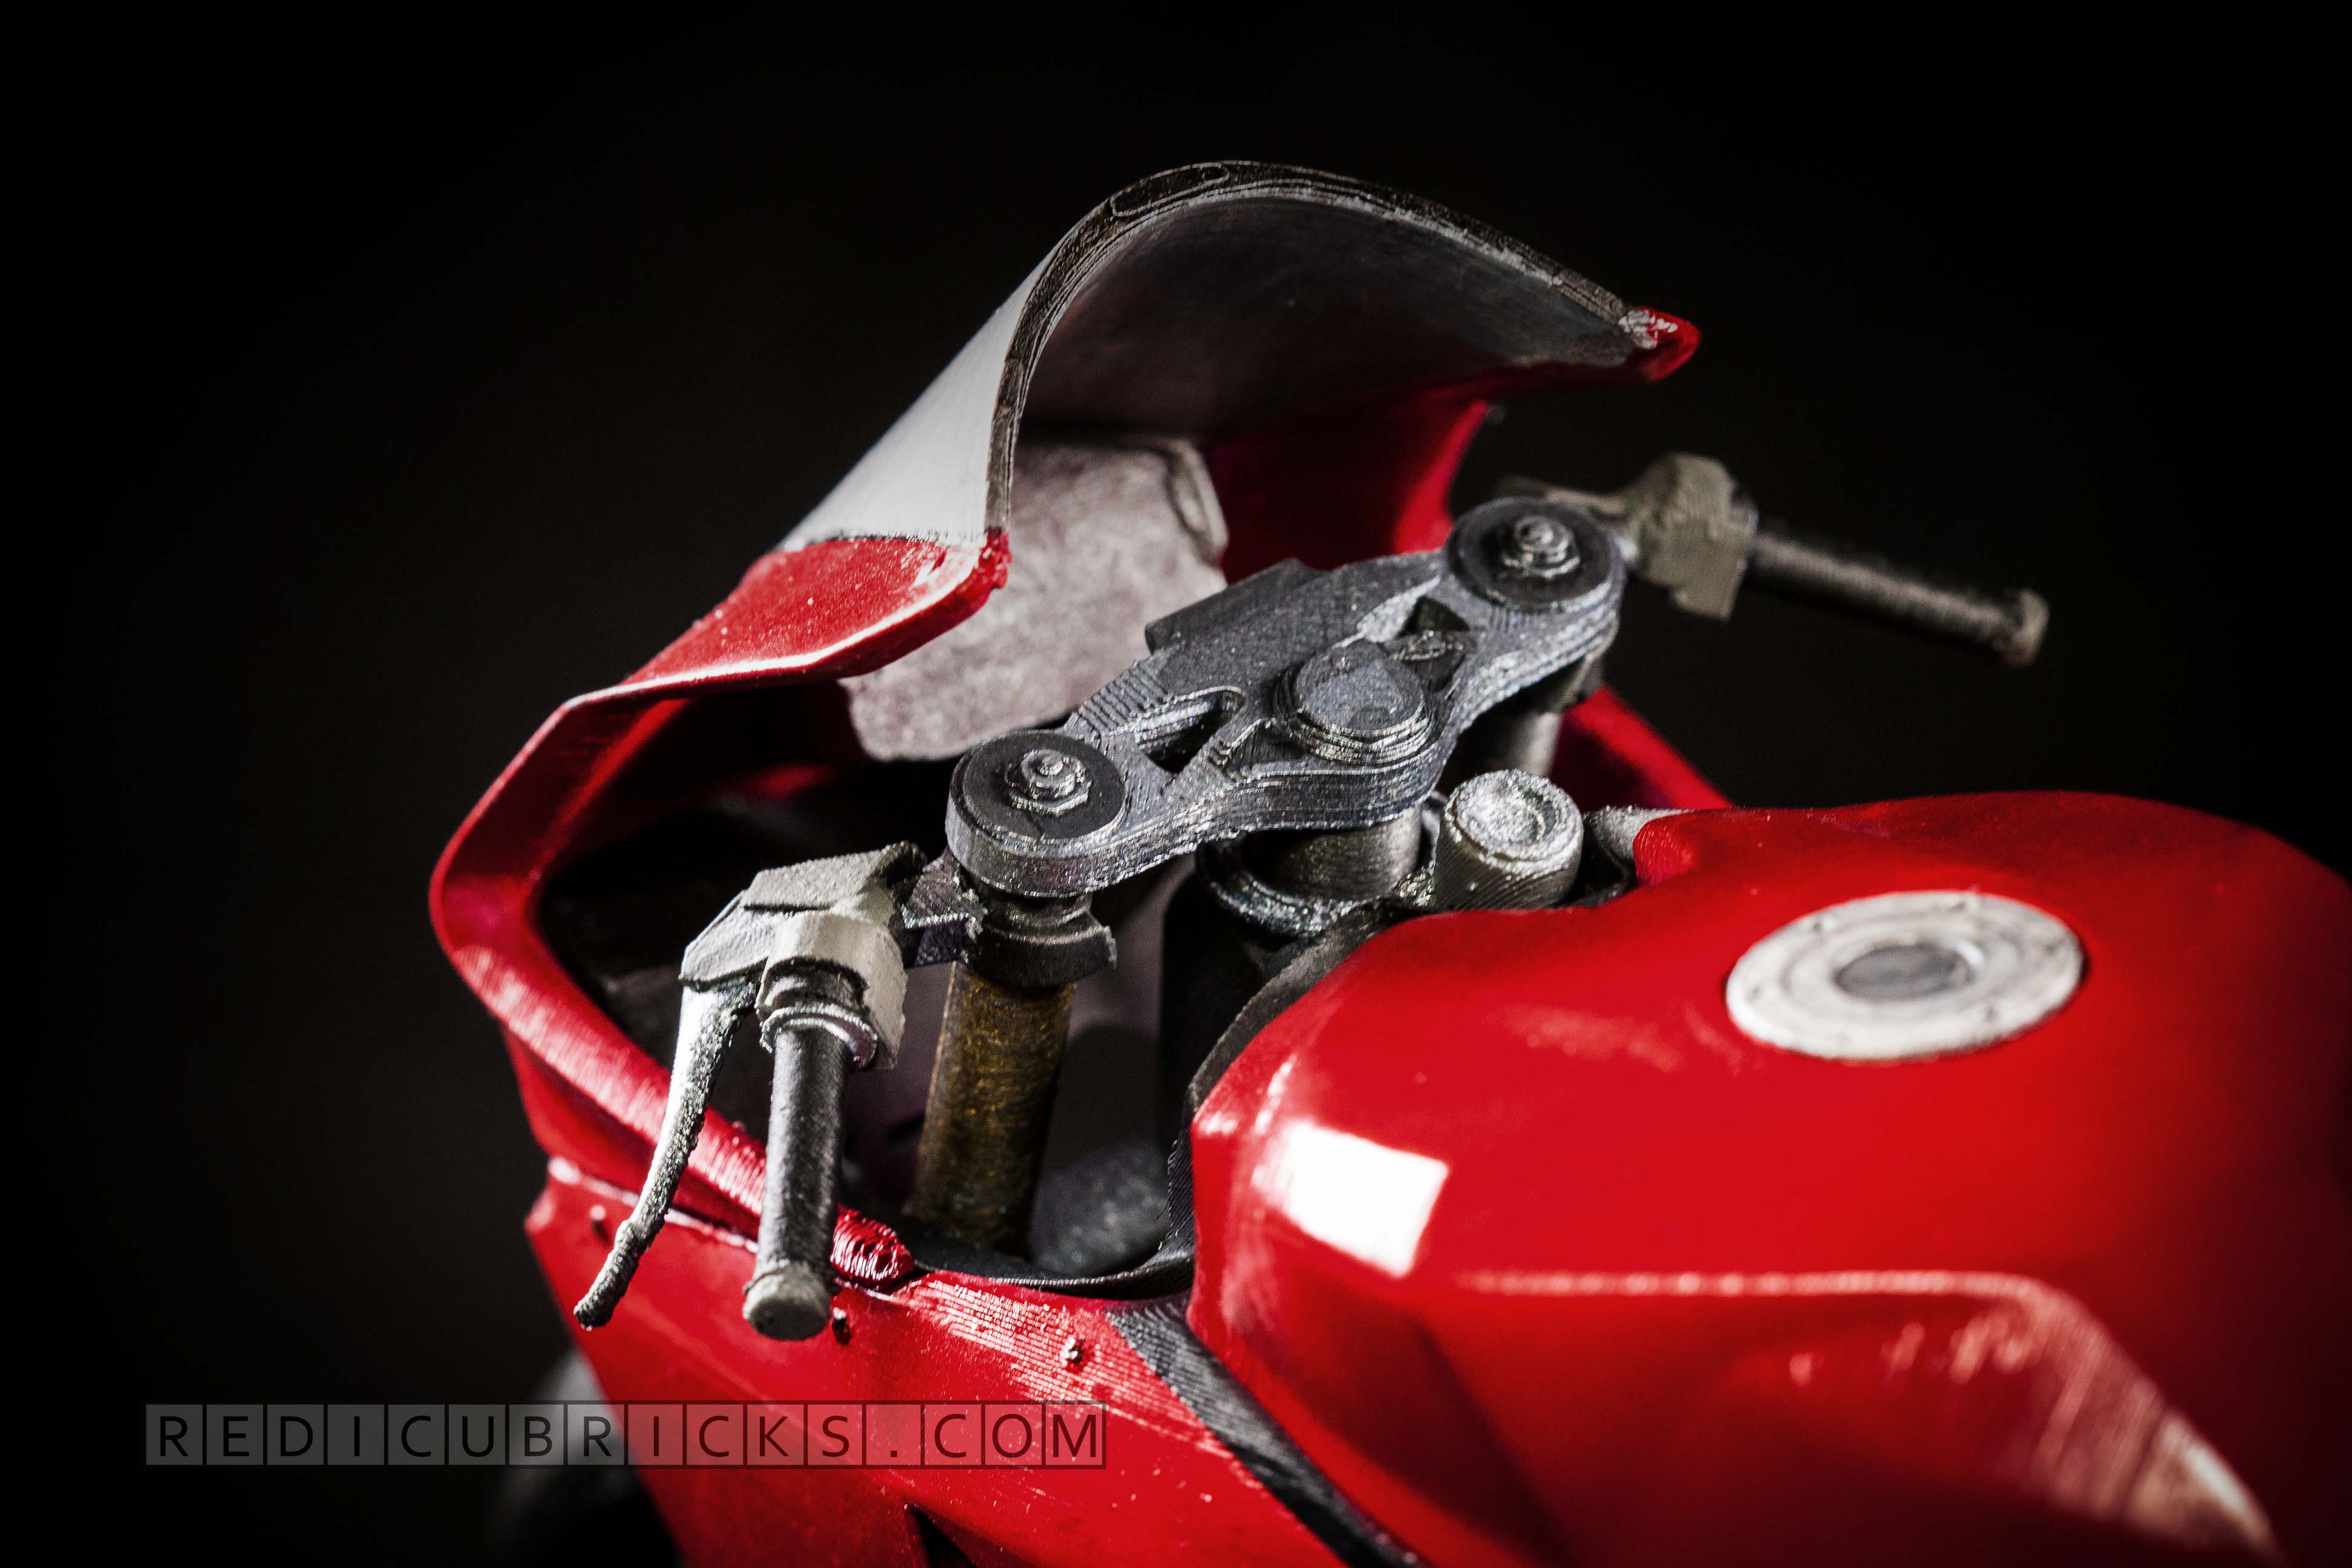 Print Out Your Own Ducati 1199 Panigale Motorcycle